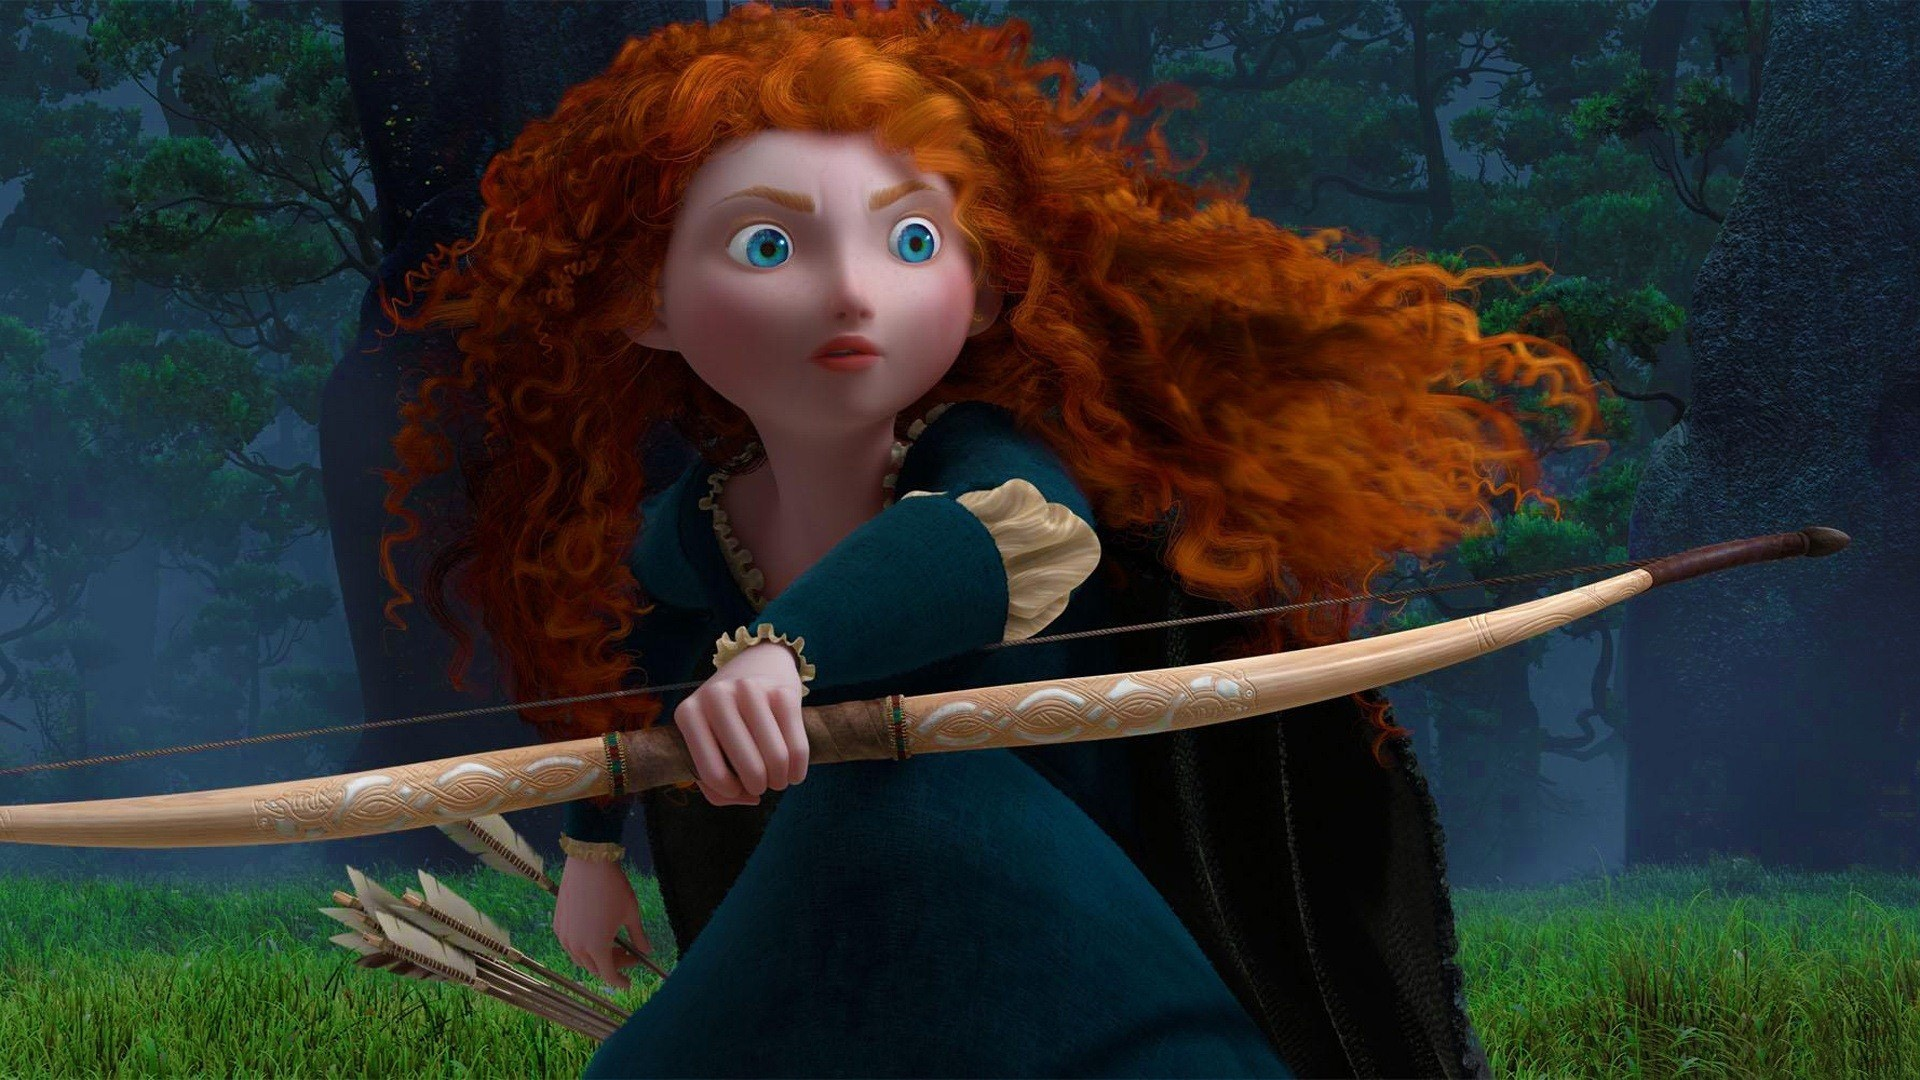 Merida from 'Brave' Will Join the Cast of 'Once Upon a Time' Next Season